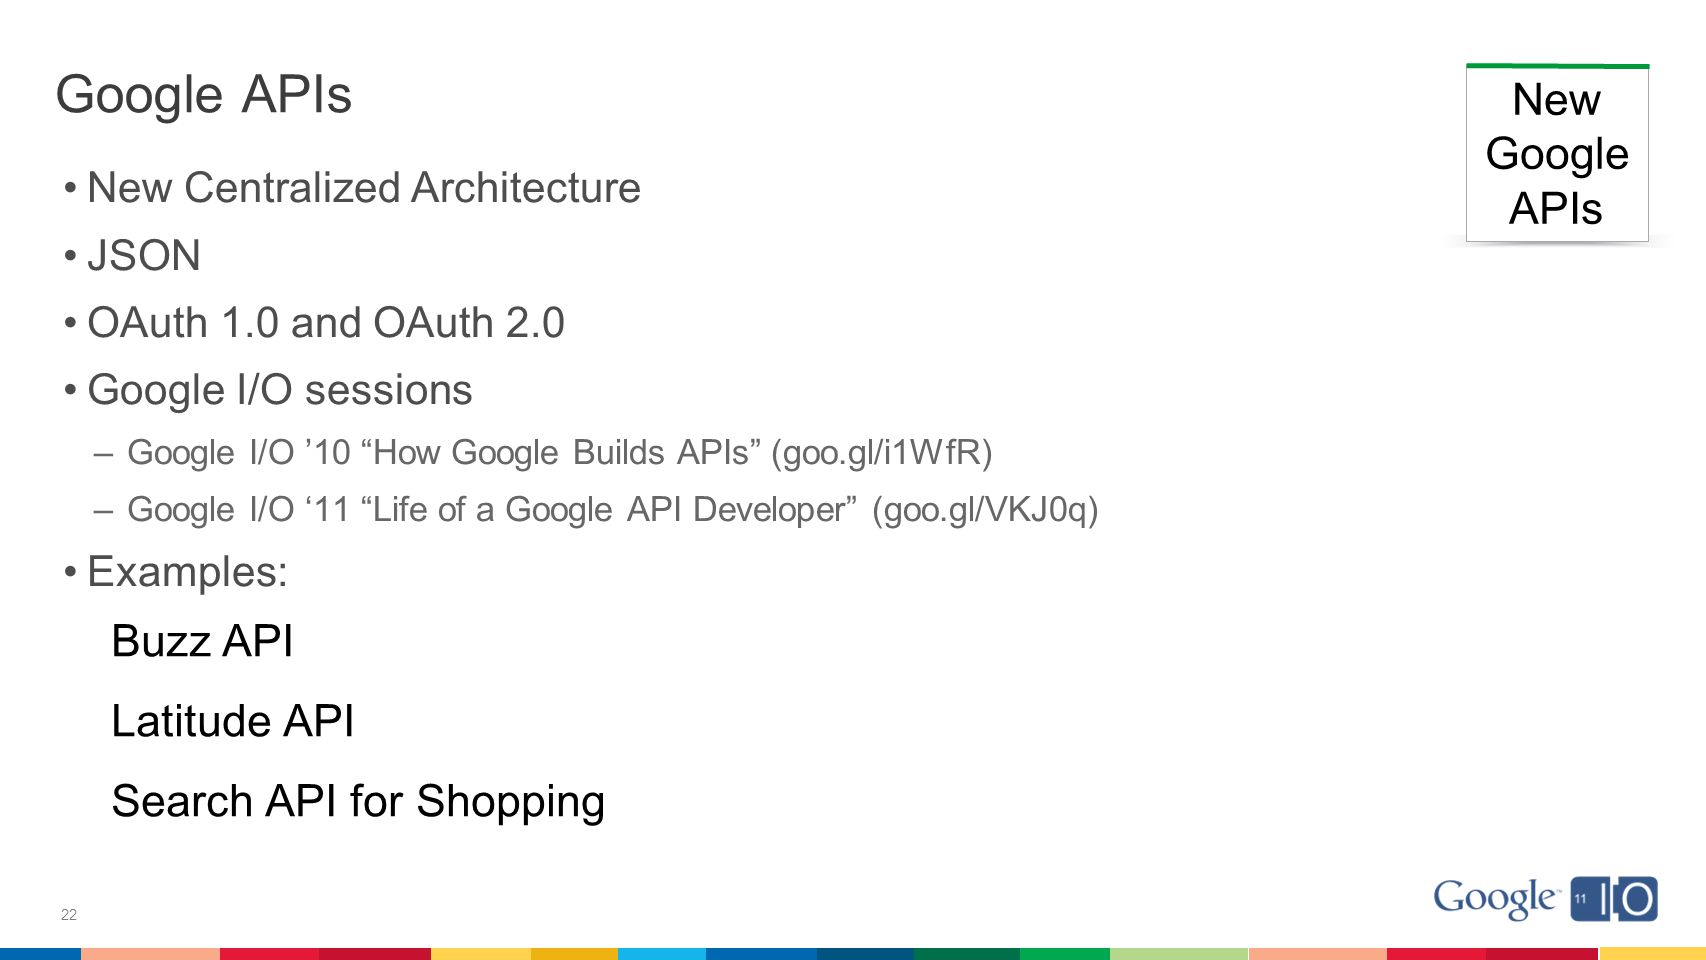 22 Google APIs New Centralized Architecture JSON OAuth 1.0 and OAuth 2.0 Google I/O sessions –Google I/O '10 How Google Builds APIs (goo.gl/i1WfR) –Google I/O '11 Life of a Google API Developer (goo.gl/VKJ0q) Examples: New Google APIs Buzz API Latitude API Search API for Shopping